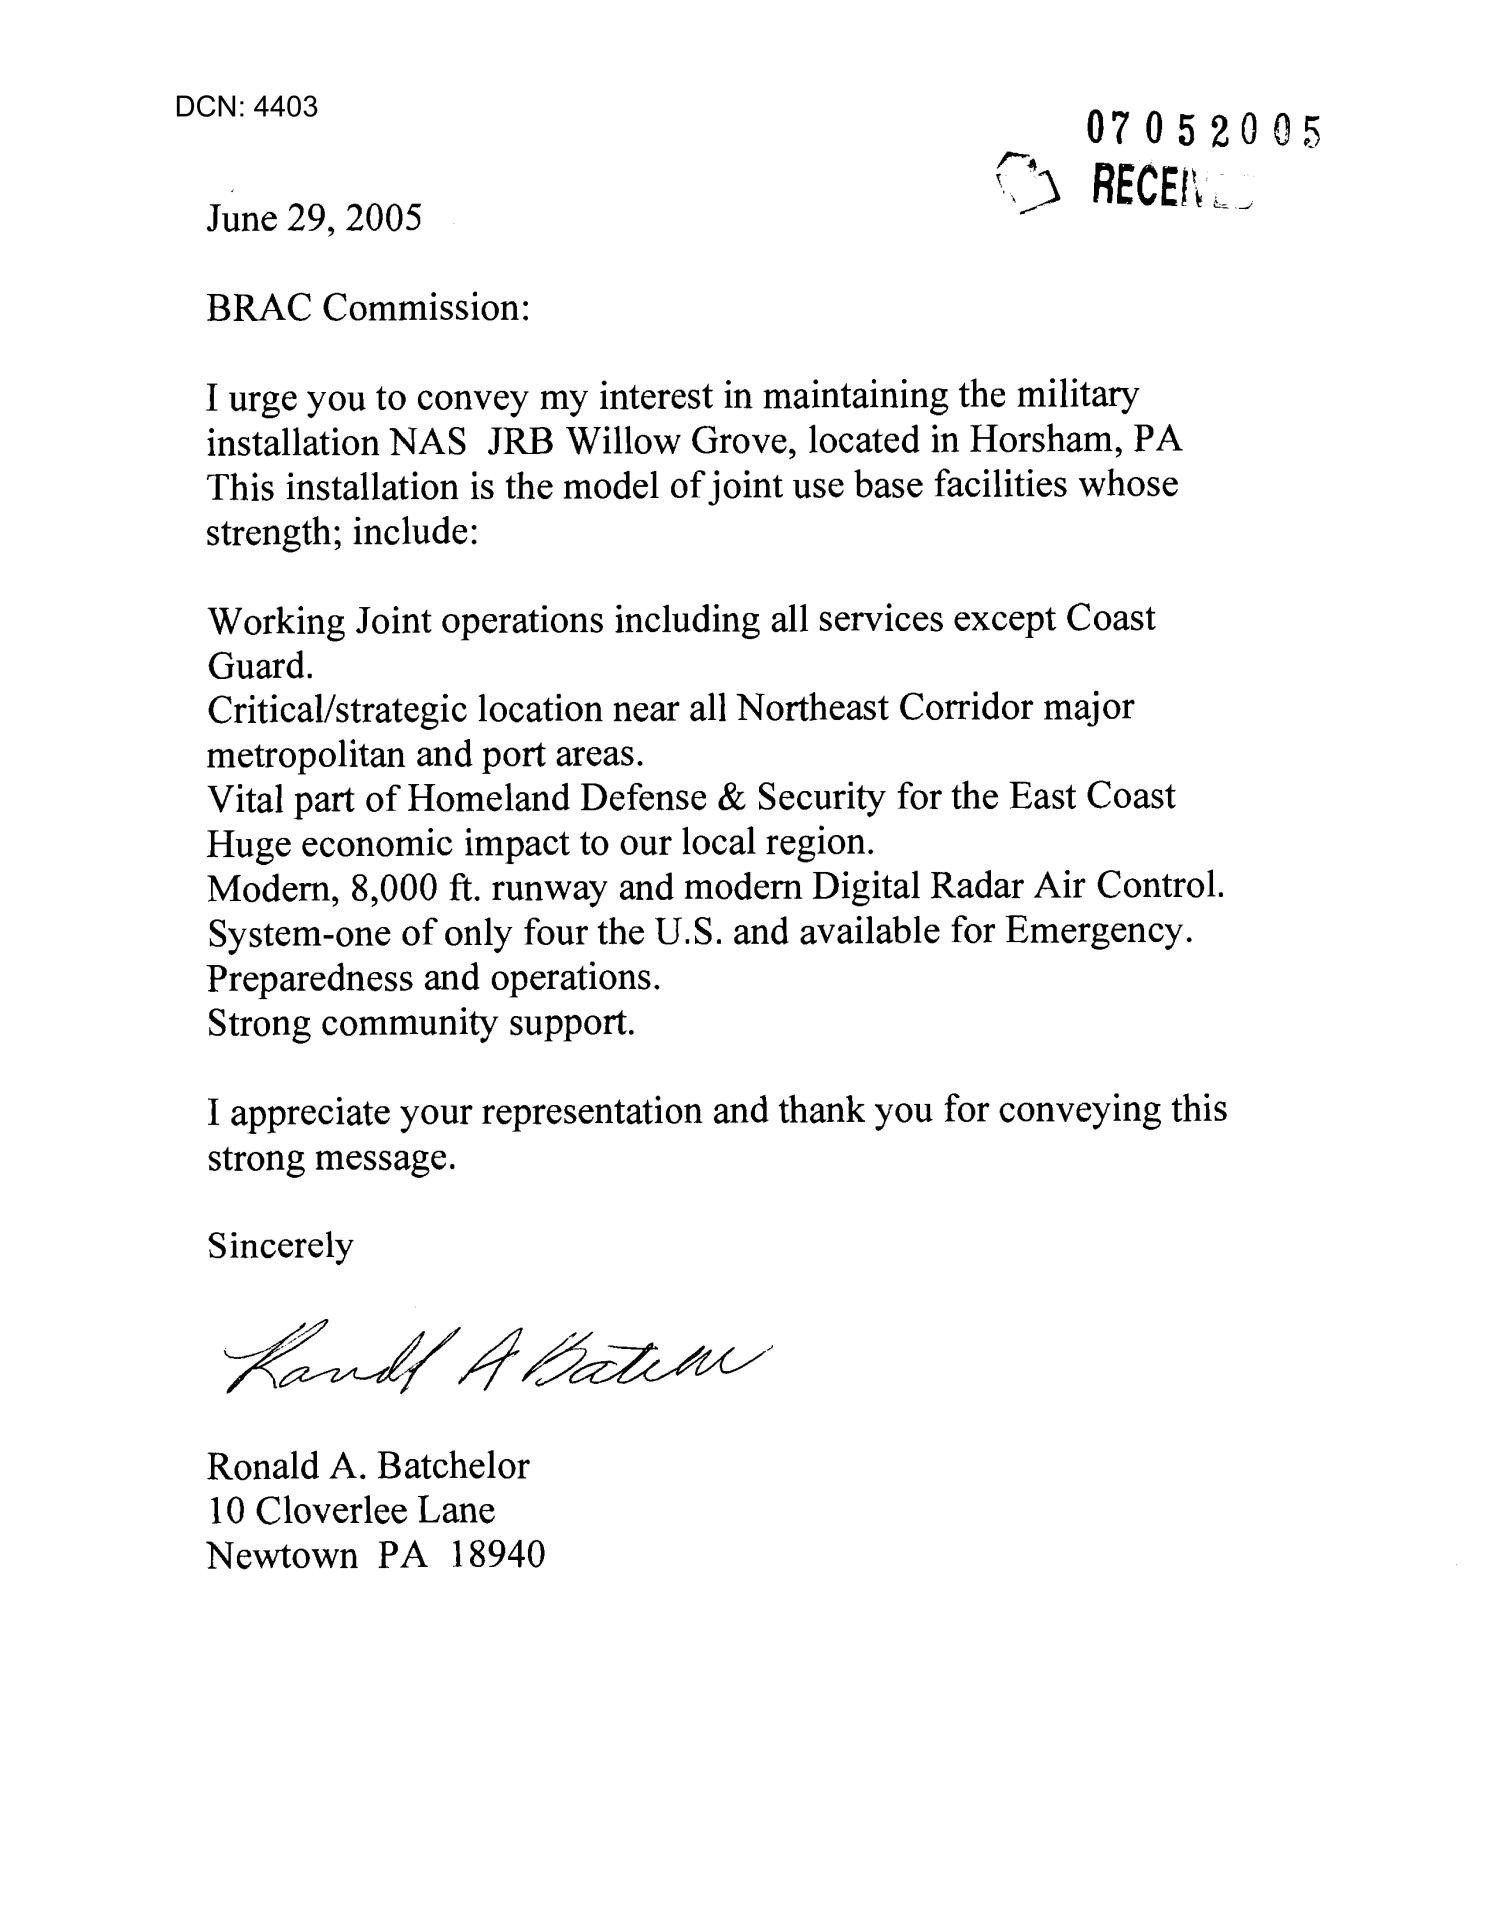 Bad News Letter Template Letter From Ronald A Batchelor to the Mission In